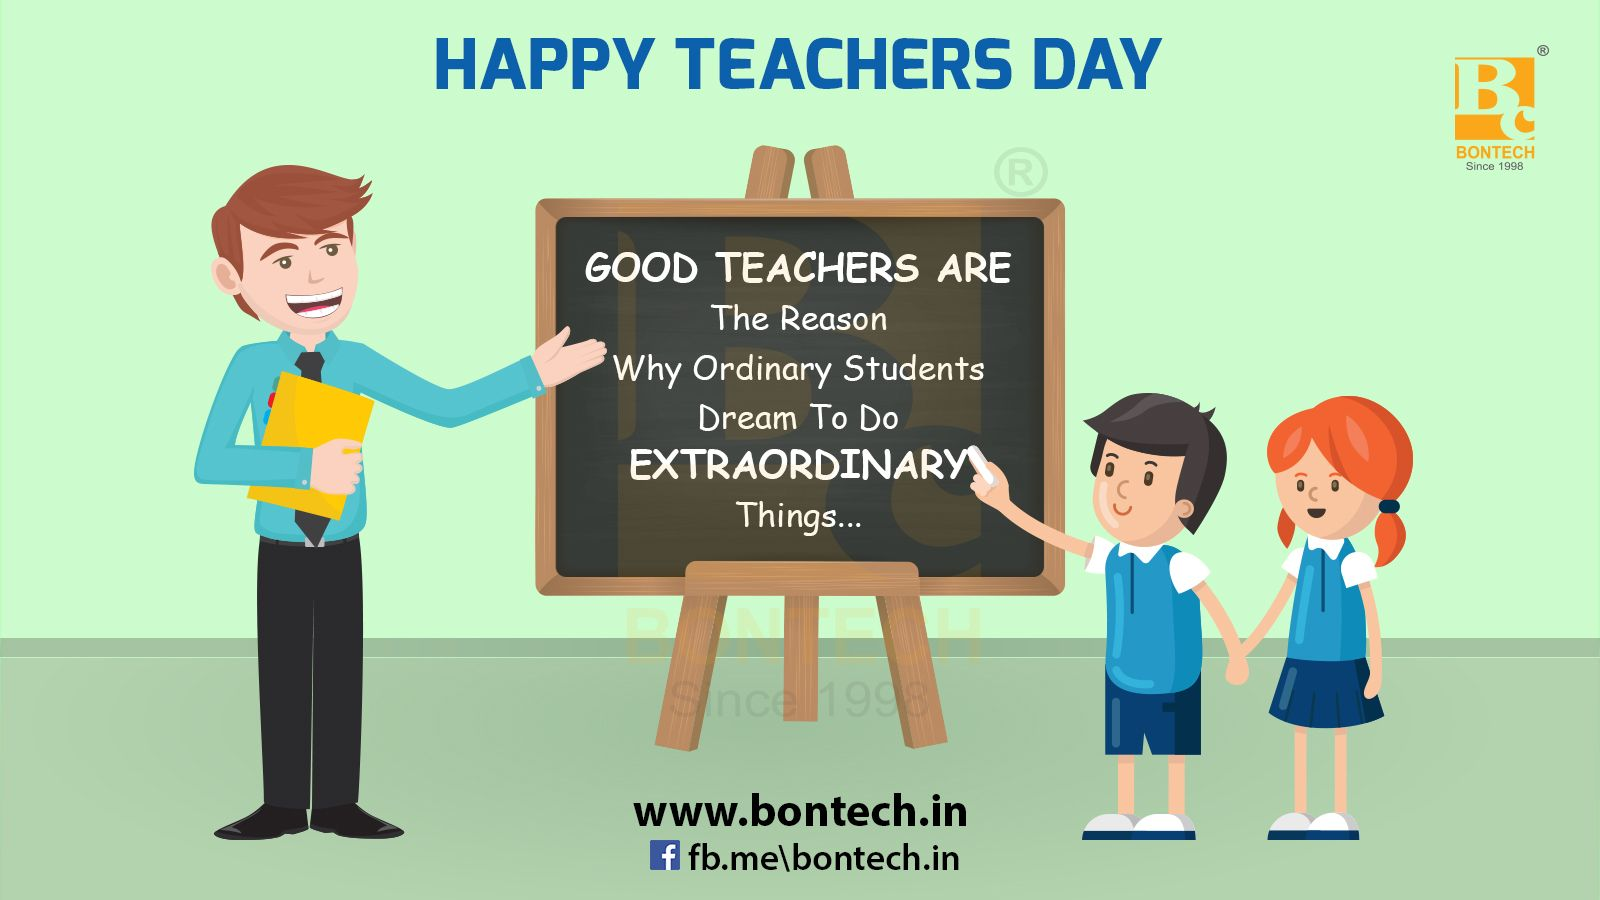 Teachers Day Poster Teachers Day Poster Happy Teachers Day Teachers Day